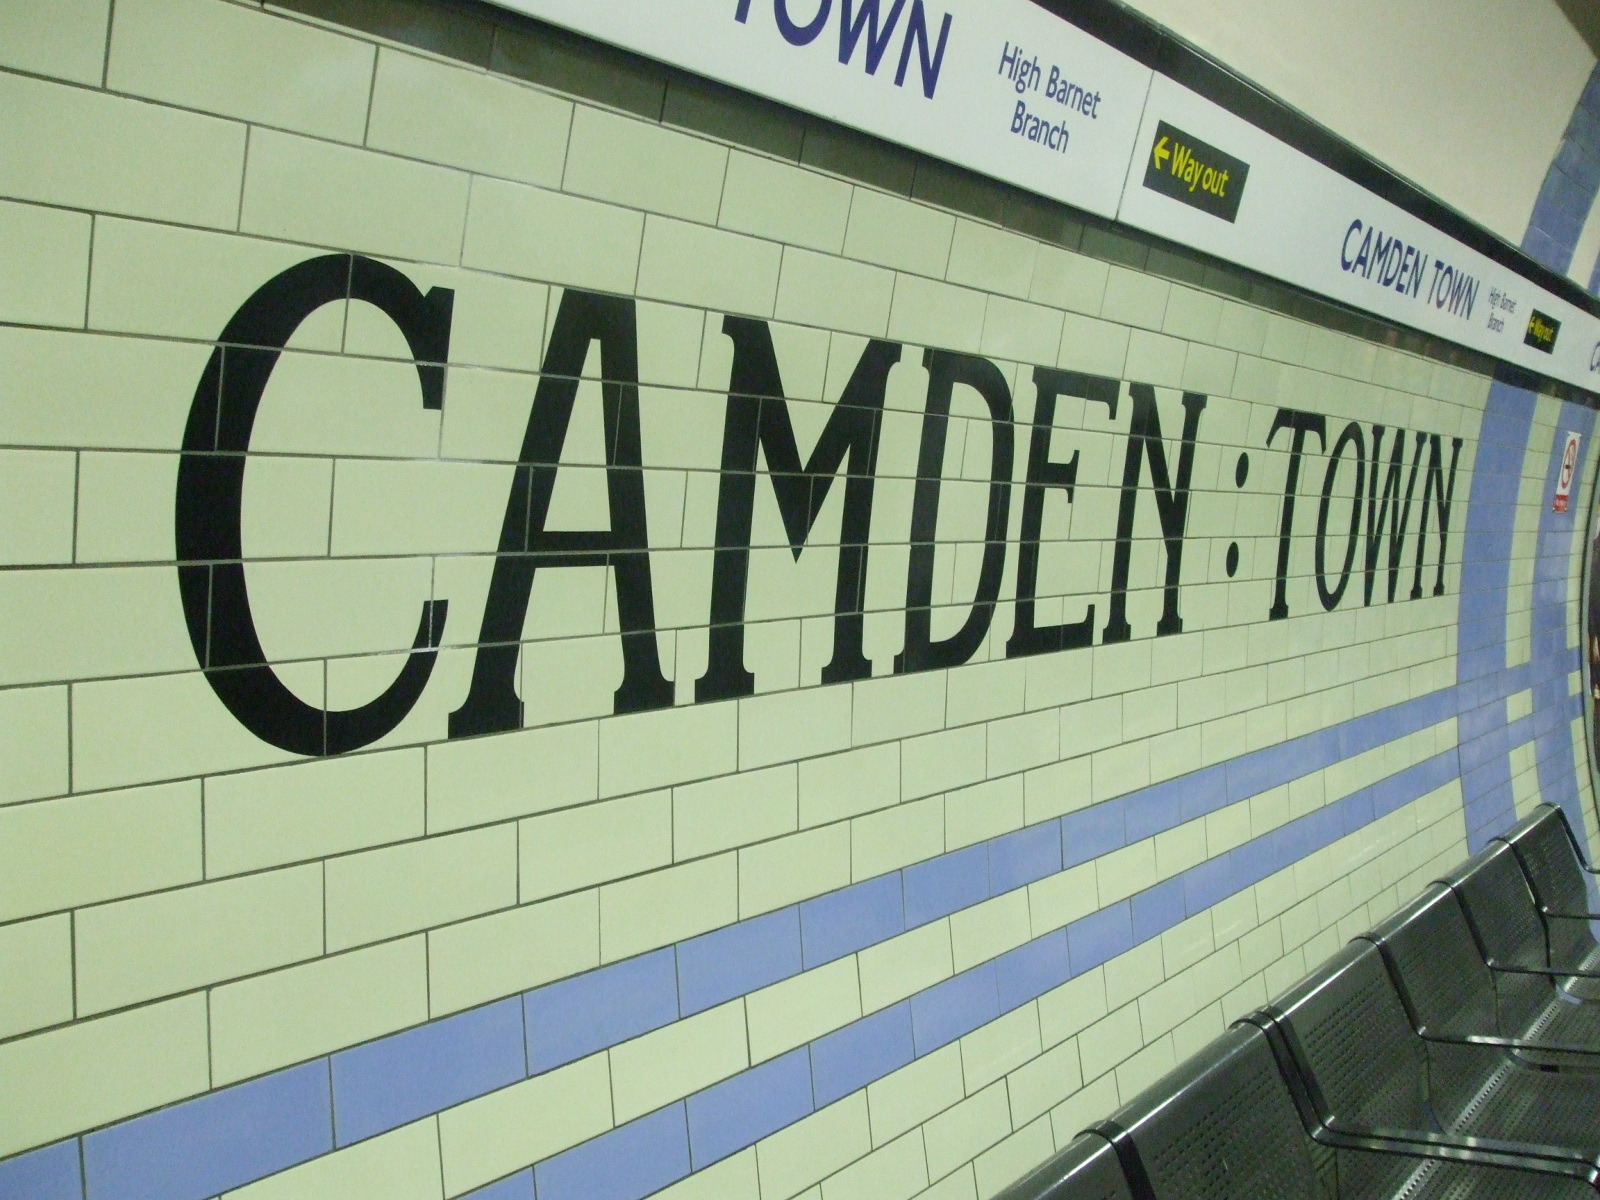 camden town dating Find great deals on ebay for camden town cd shop with confidence.